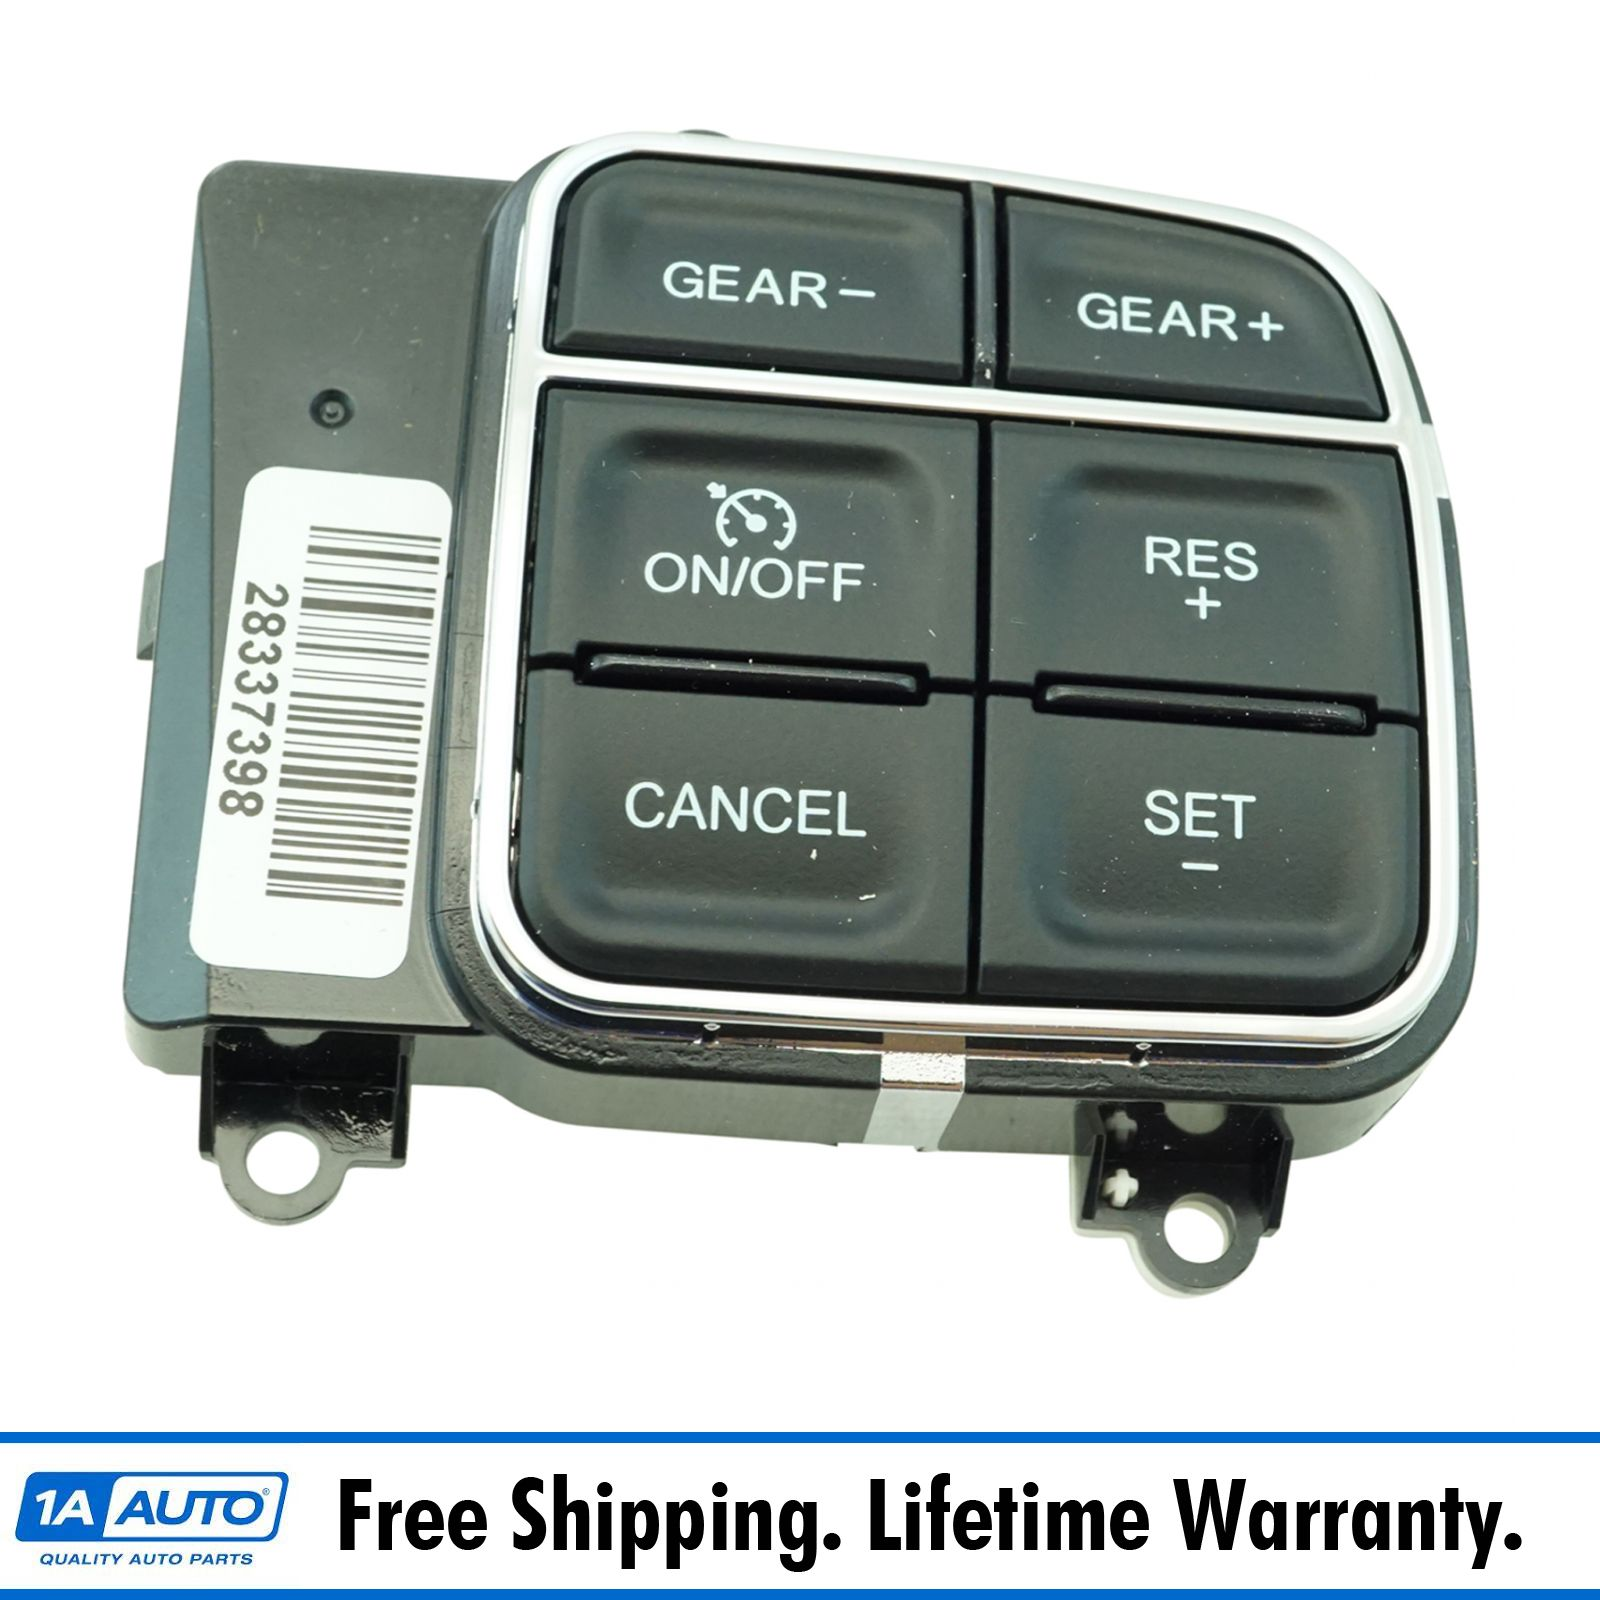 Cruise Control Should Not Be Used >> Details About Oe Mopar Steering Wheel Cruise Control Switch With Gear Shift Switch For Ram New